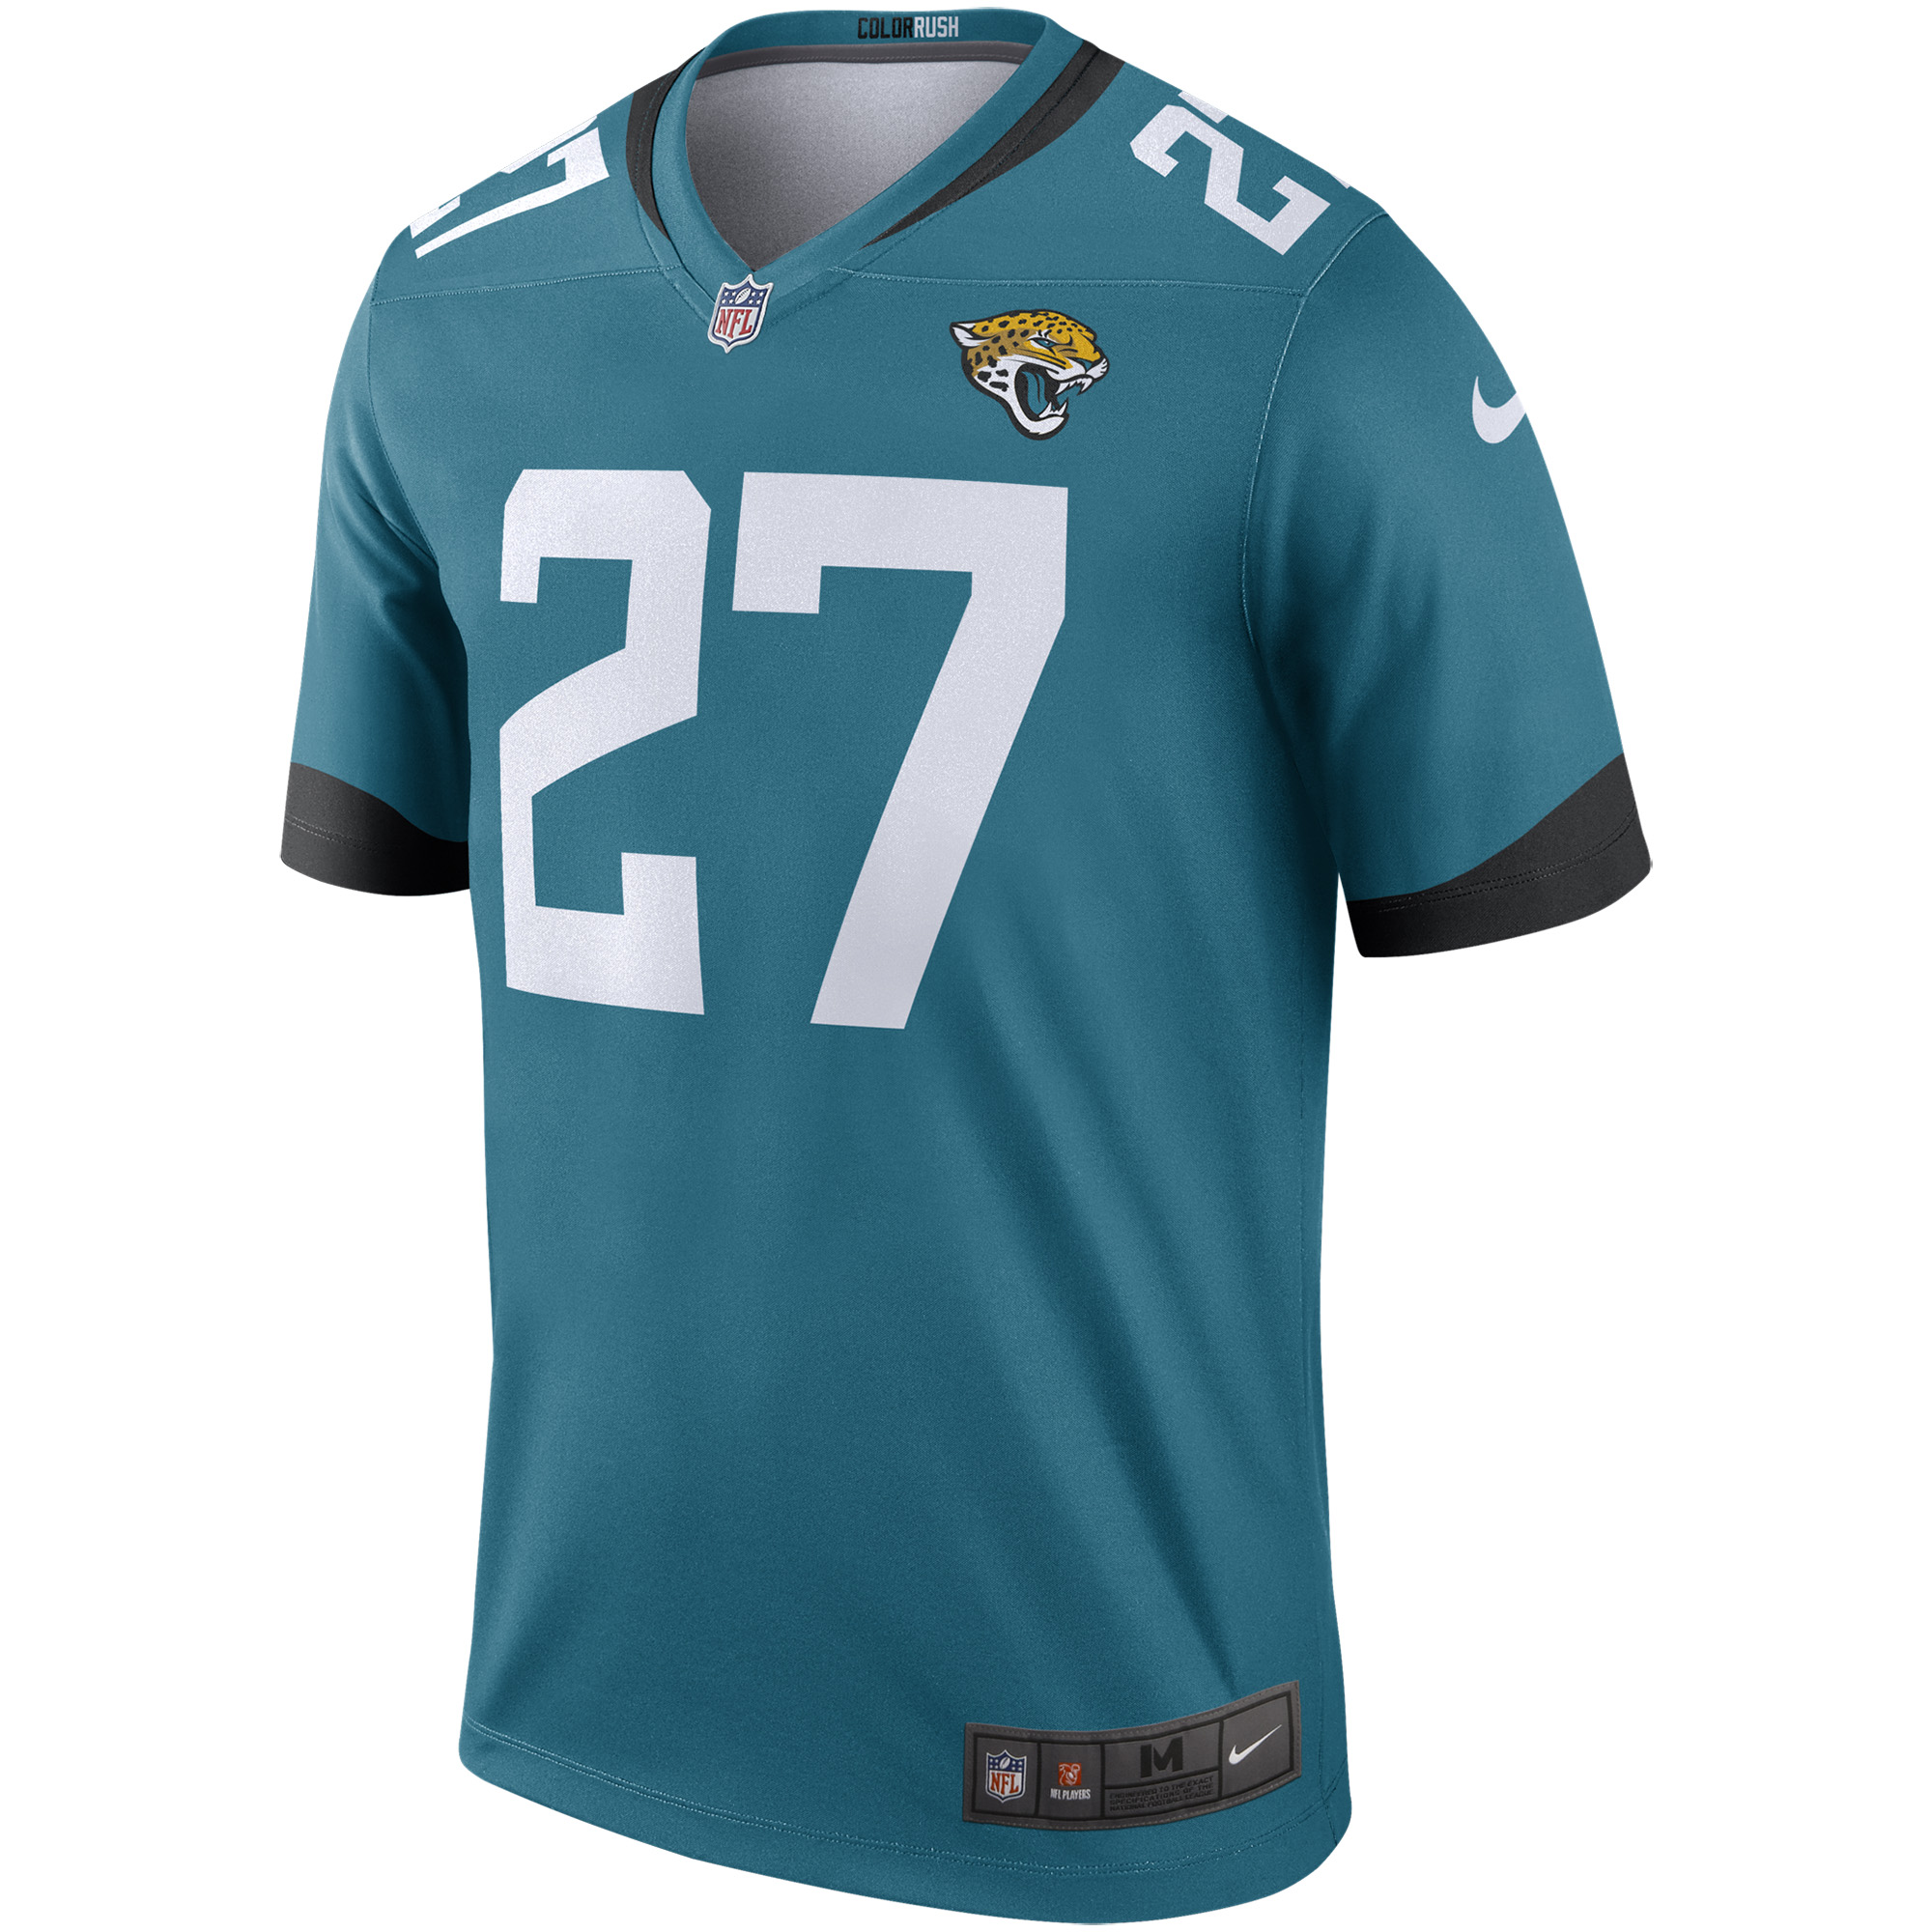 buy popular 5a748 a9b0b Leonard Fournette Nike Jacksonville Jaguars Color Rush Legend Jersey - Teal